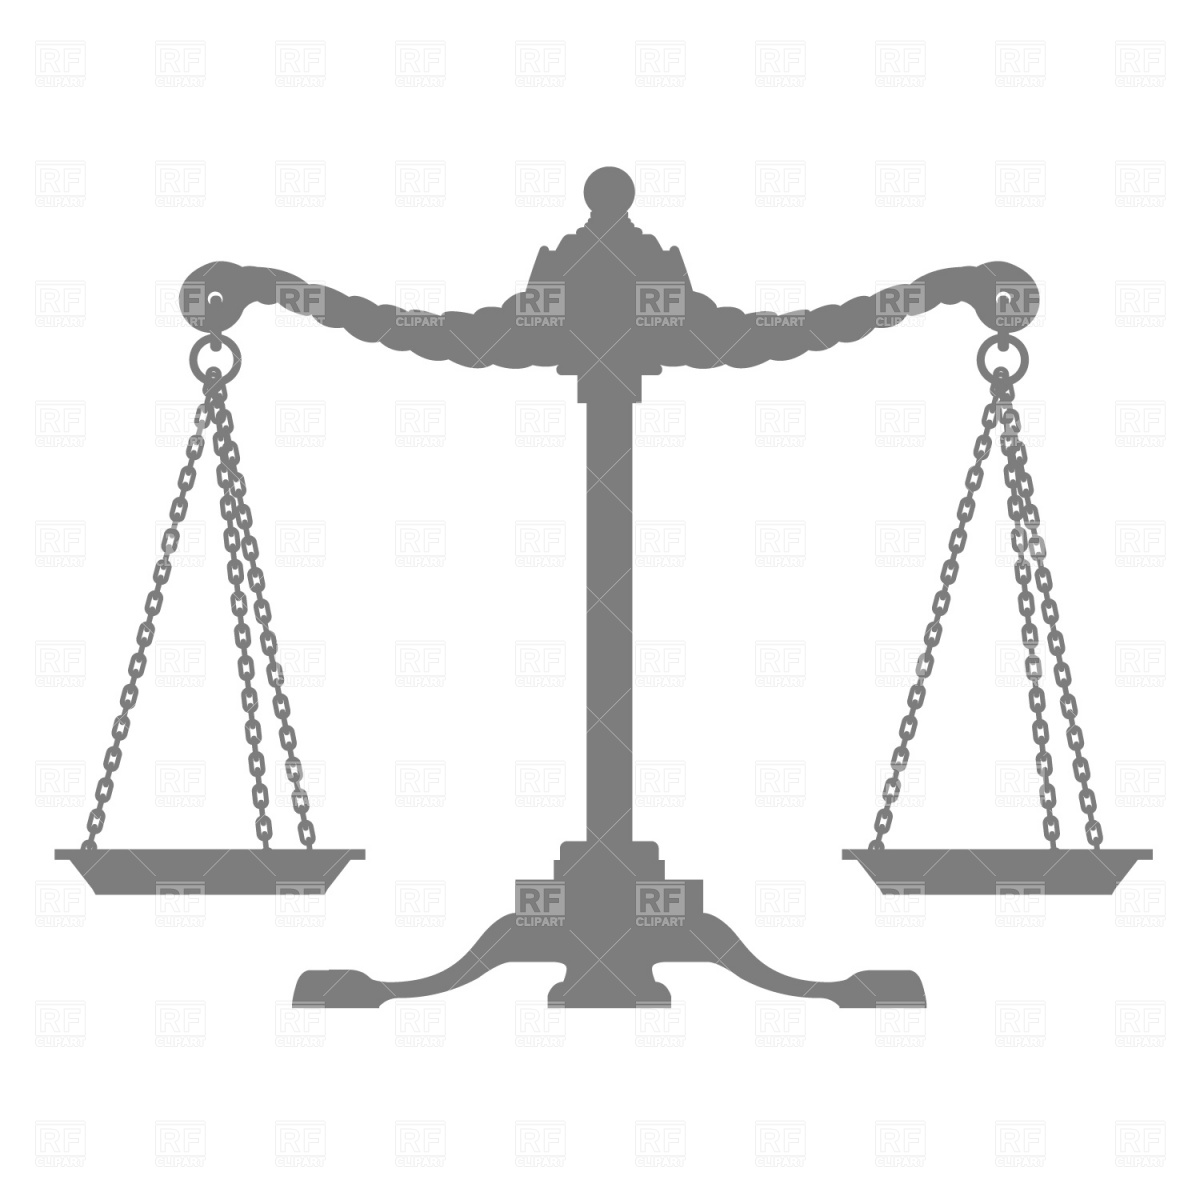 Tipping classic weight scale clipart image library download Quotes about Scales Of Justice (20 quotes) image library download